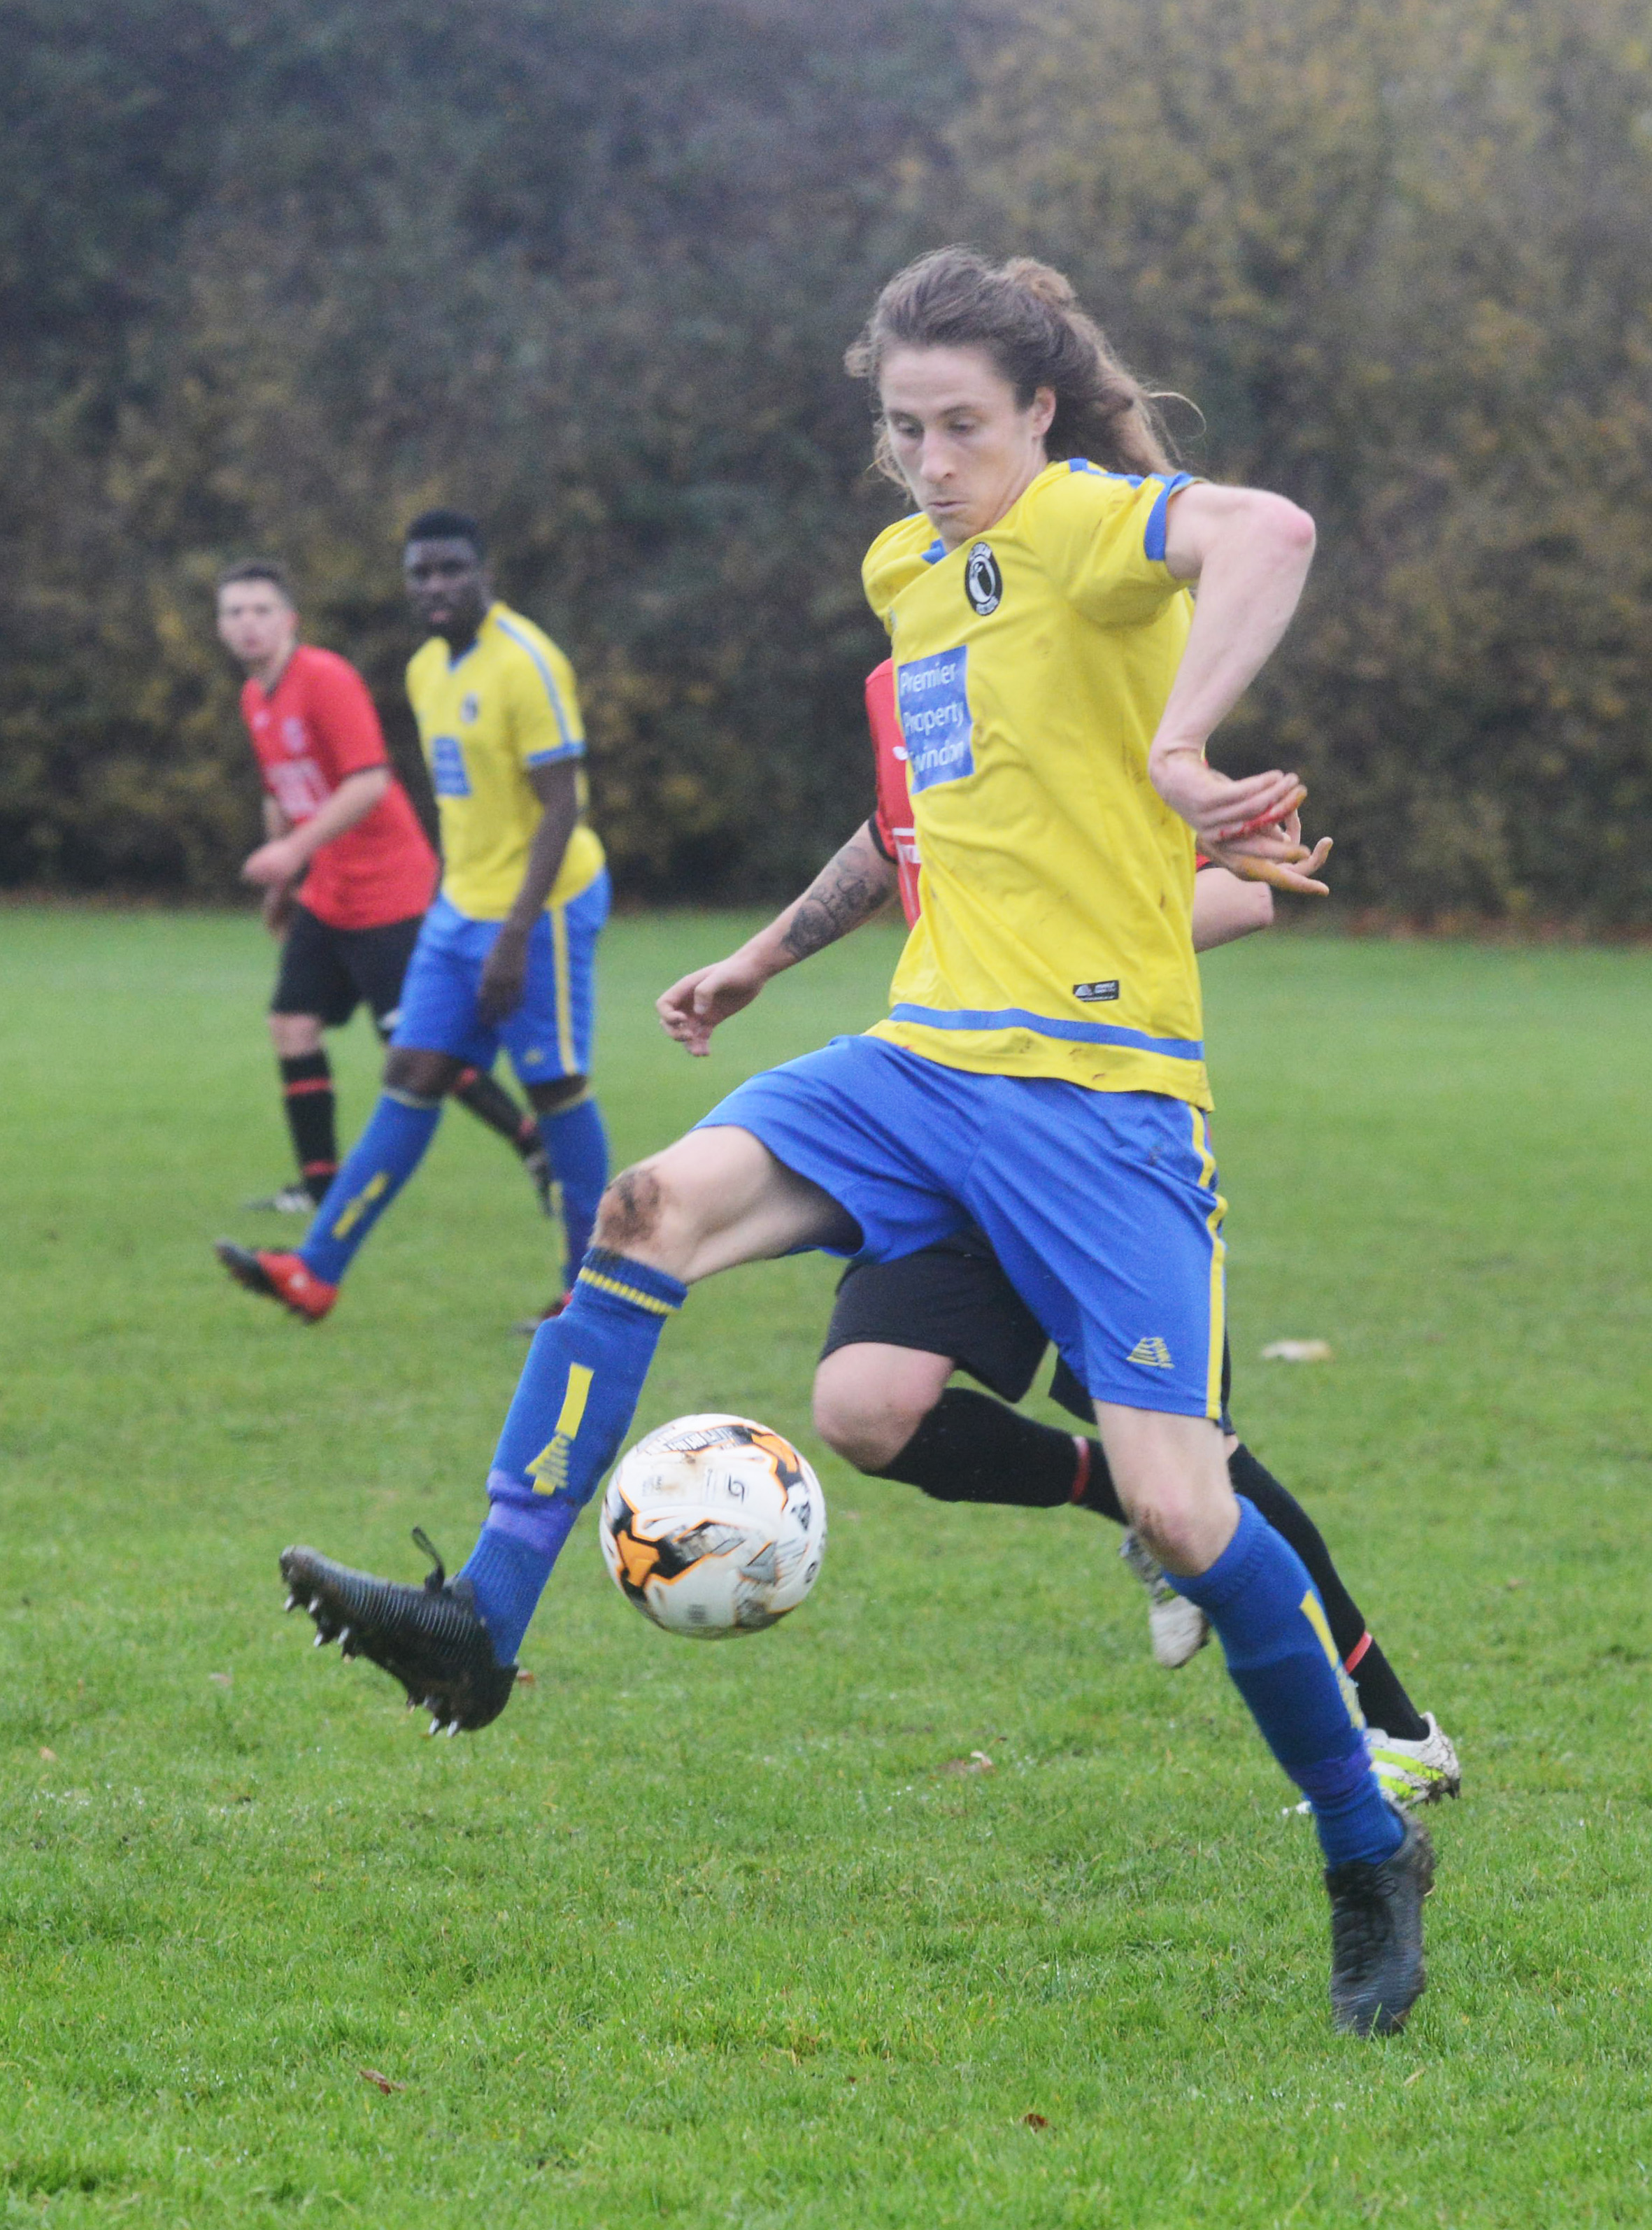 FC Dorcan's hat-trick hero George Bouverie-Brine controls the ball during their match with Highworth Town Development 	 PictureTHOMAS KELSEY